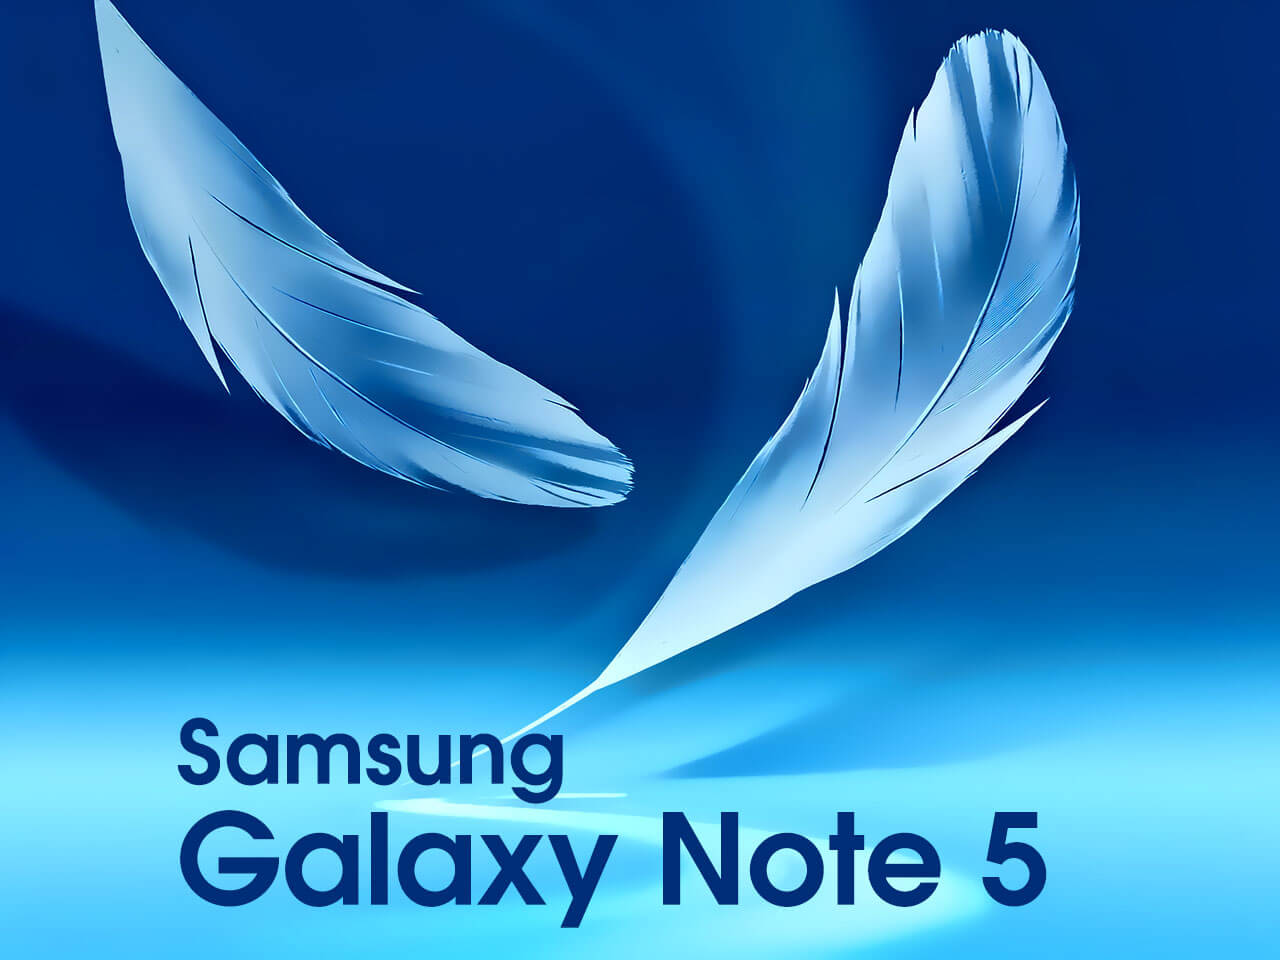 Free Download Samsung Galaxy Note 5 And Note 5 Edge 14 June 2015 Galaxy Note 5 1280x960 For Your Desktop Mobile Tablet Explore 48 Note 5 Wallpaper Dimensions Samsung